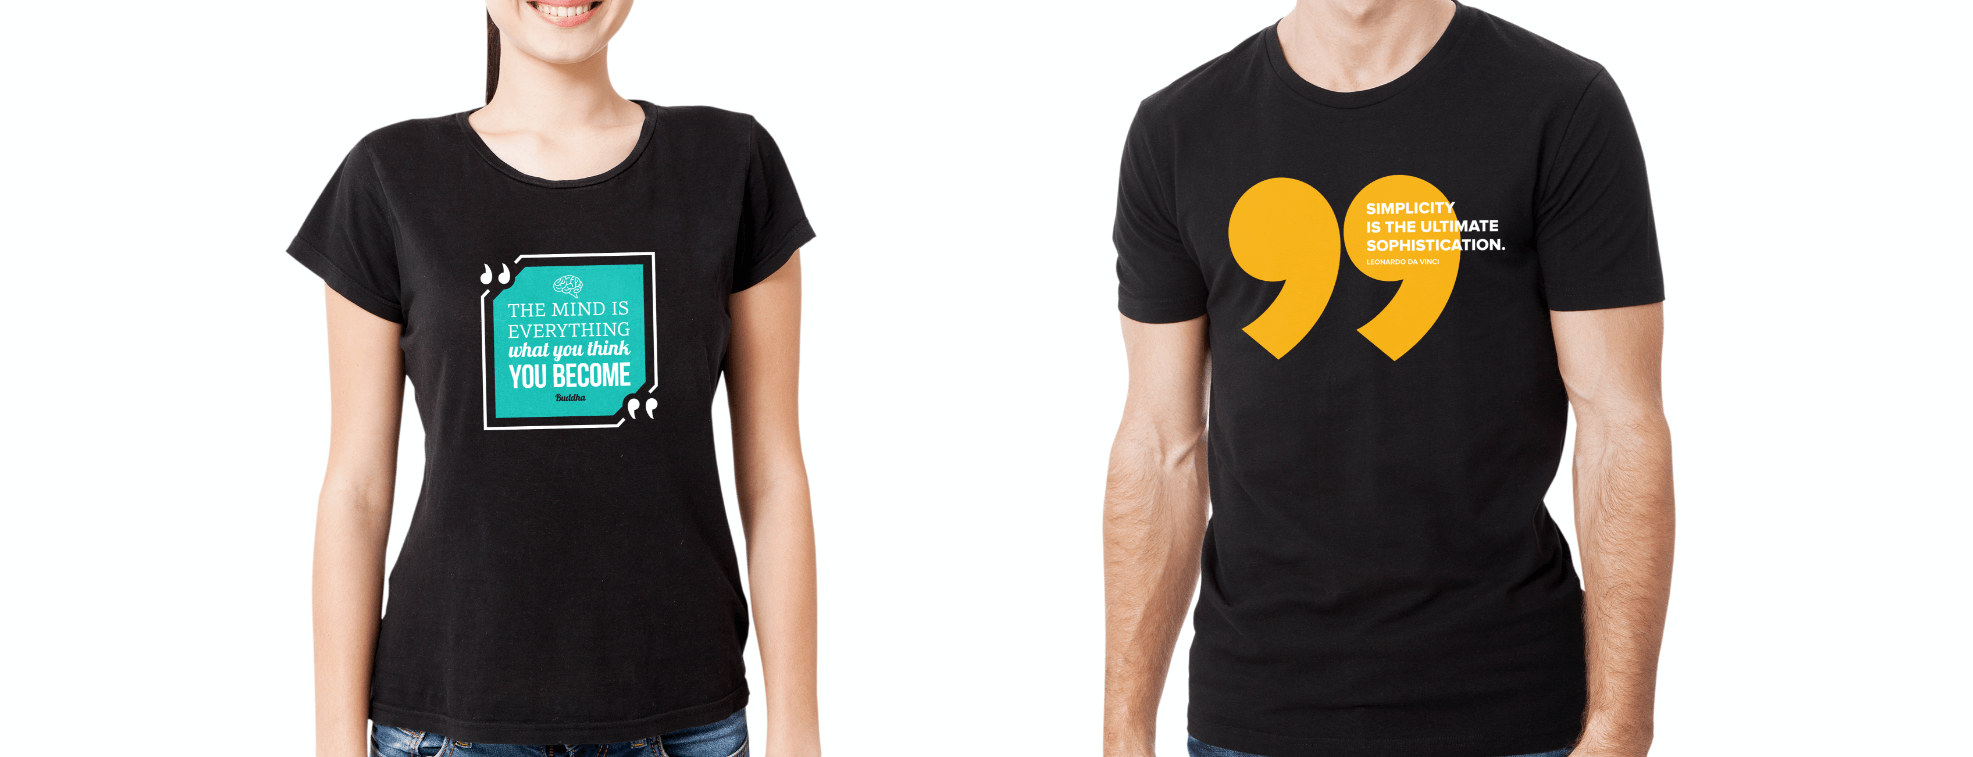 Female and male t-shirts with inspirational quotes